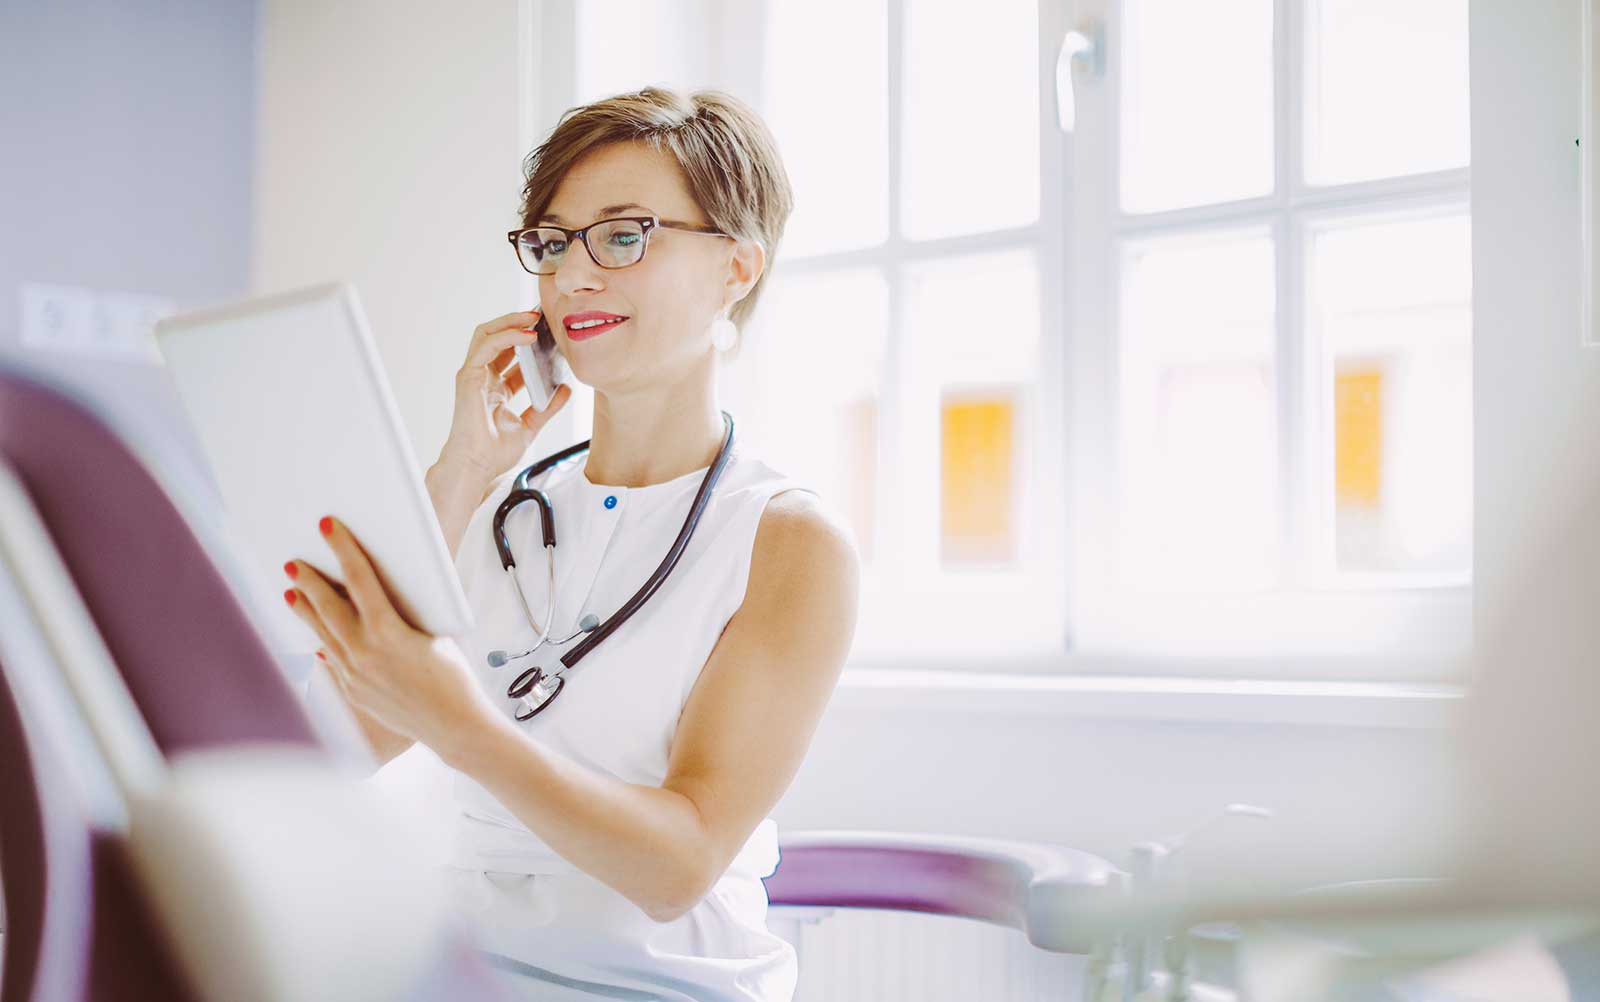 Female doctor on phone potentially with chiropractor and looking at tablet